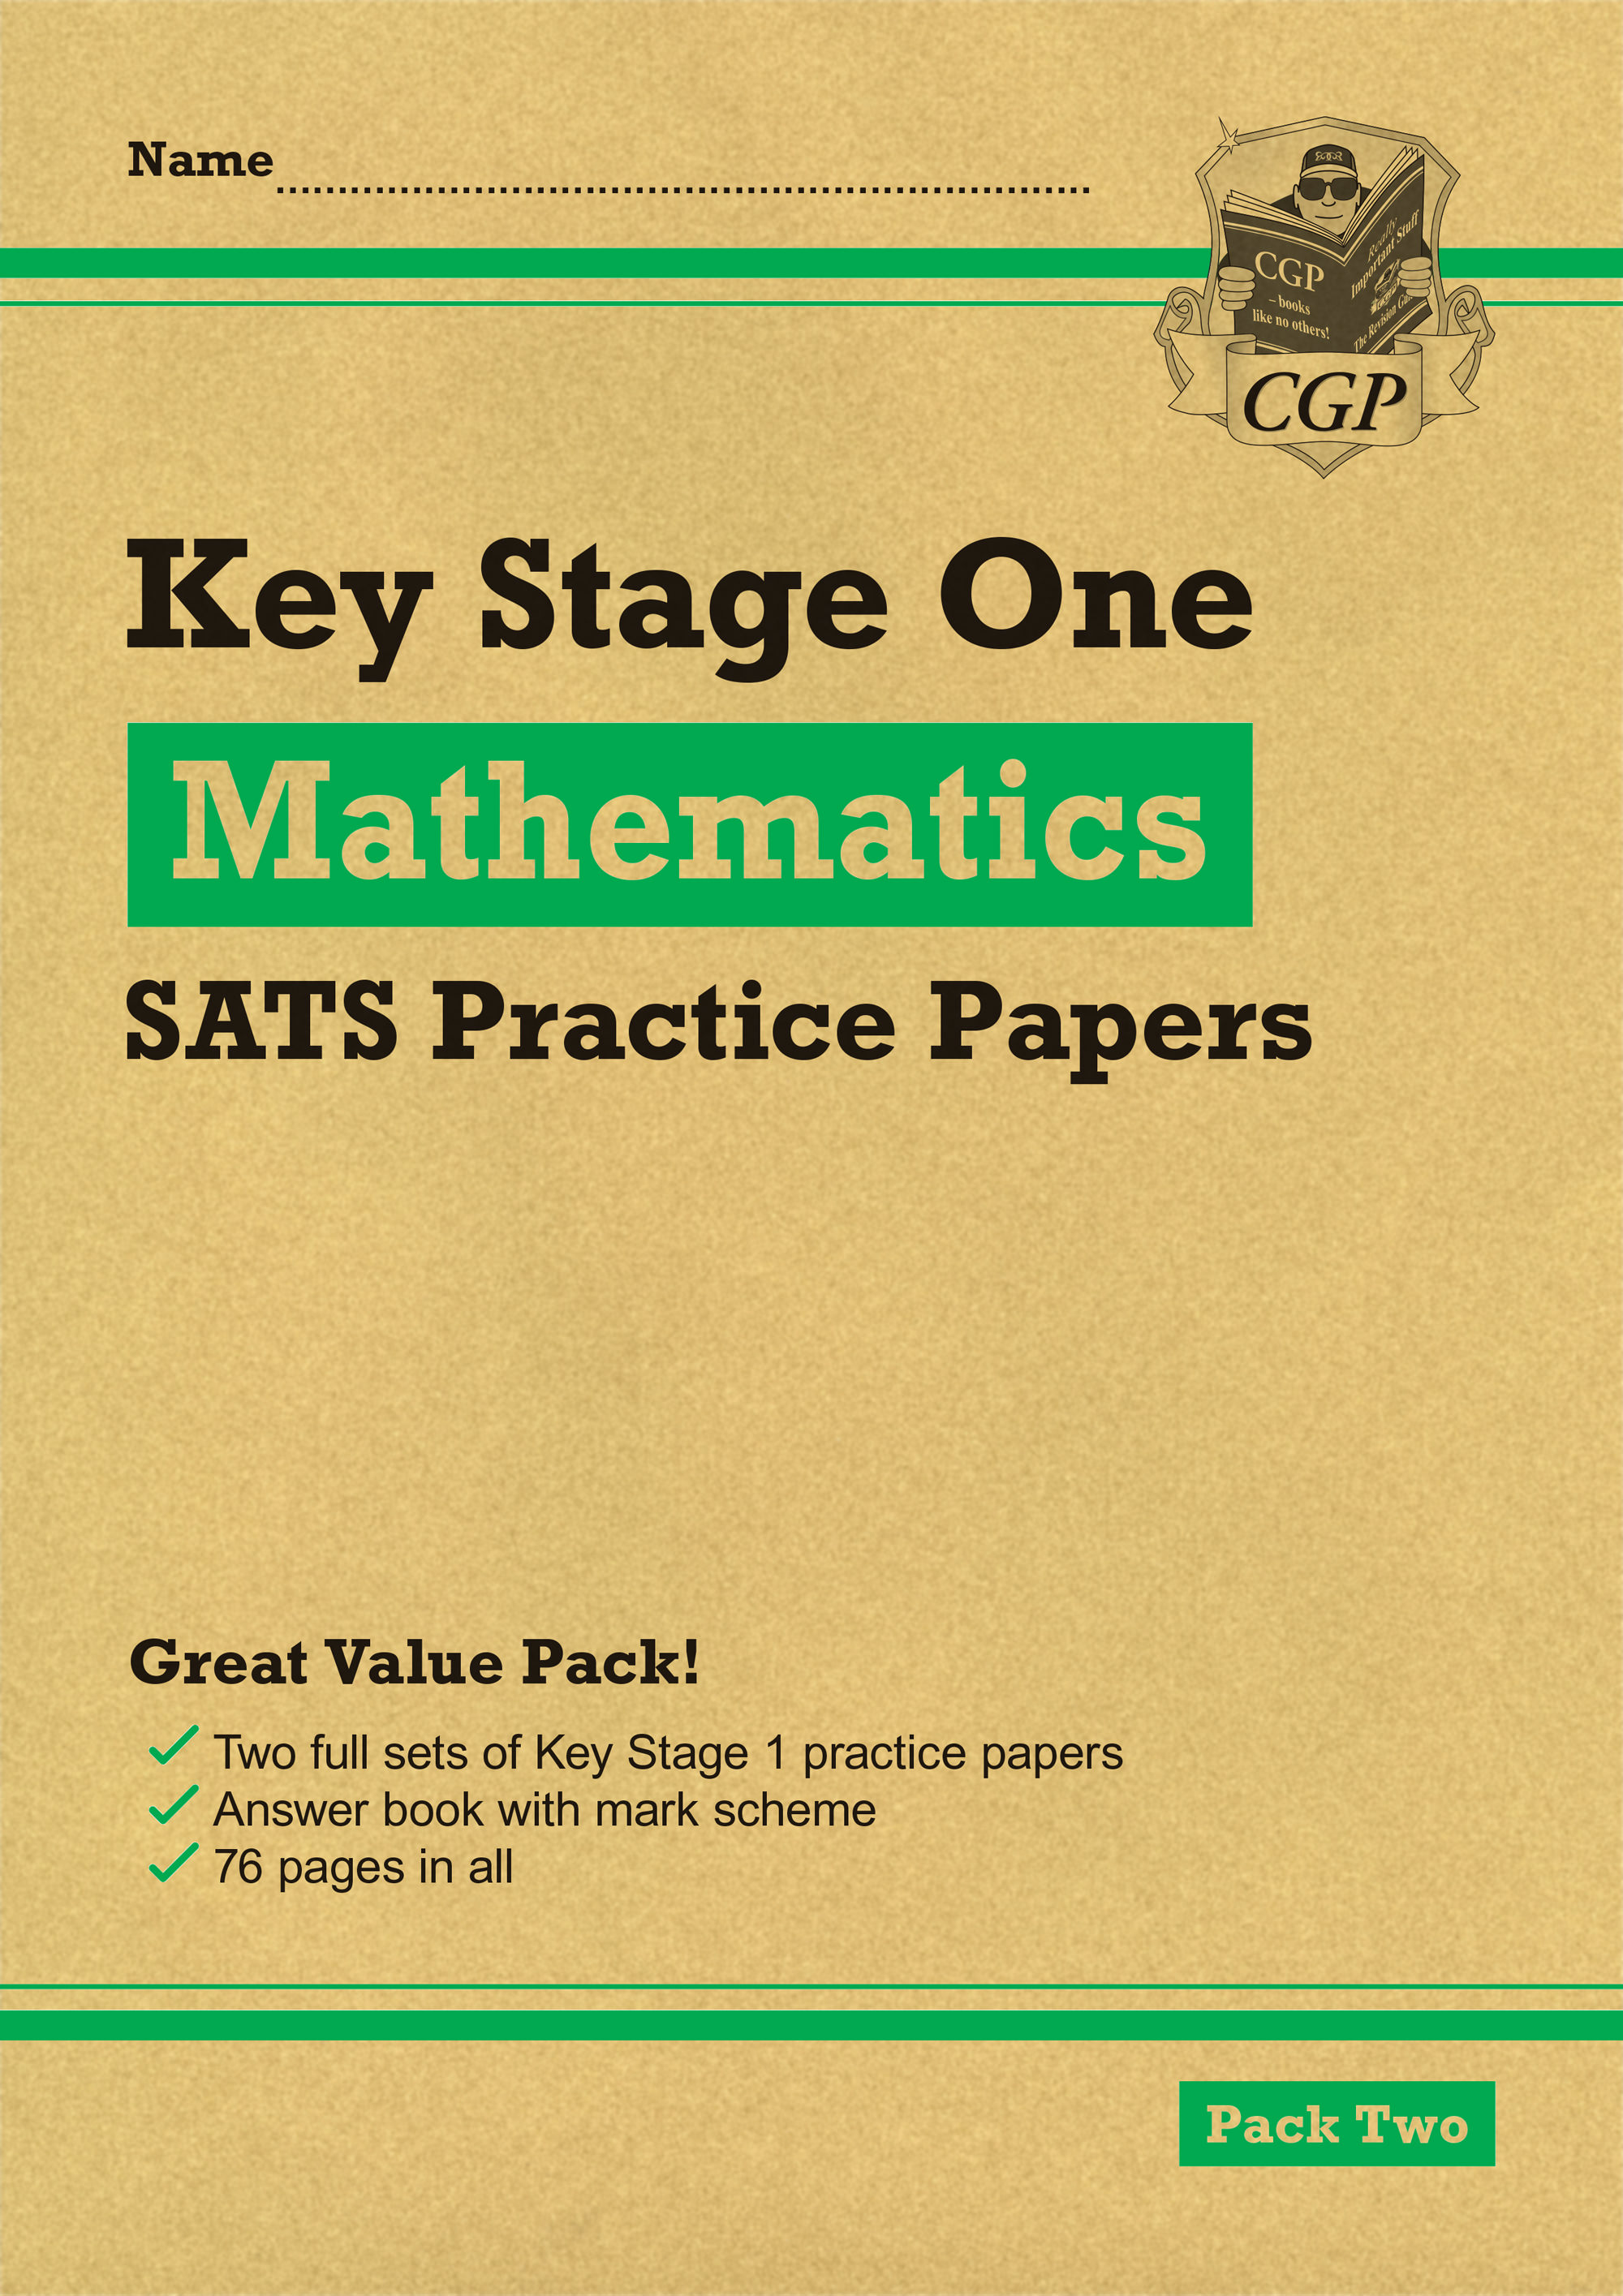 MHGP13 - New KS1 Maths SATS Practice Papers: Pack 2 (for the 2020 tests)